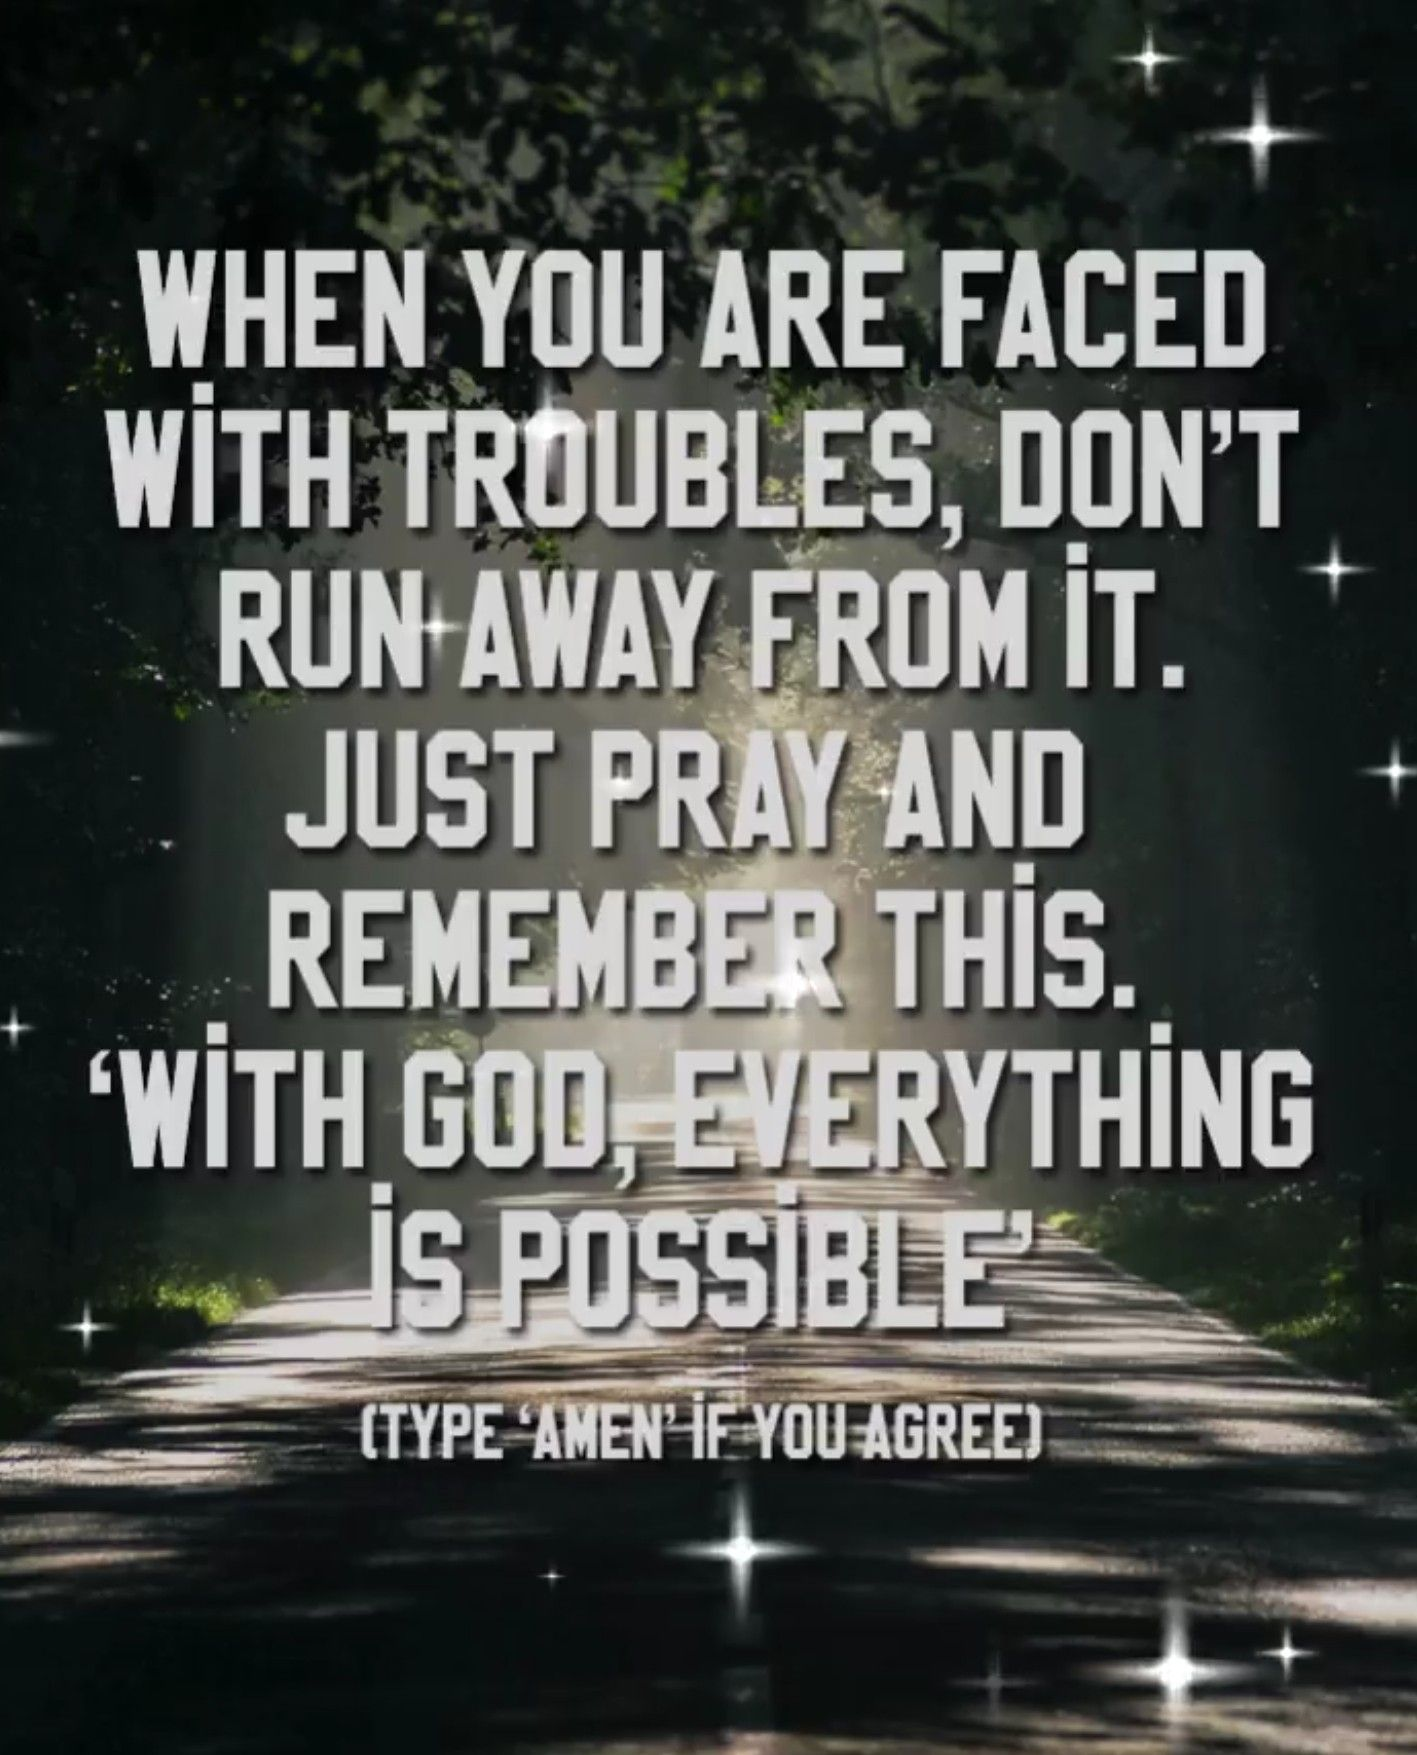 Pin By Mary Vassallo On Did You Know Just Pray Did You Know Agree